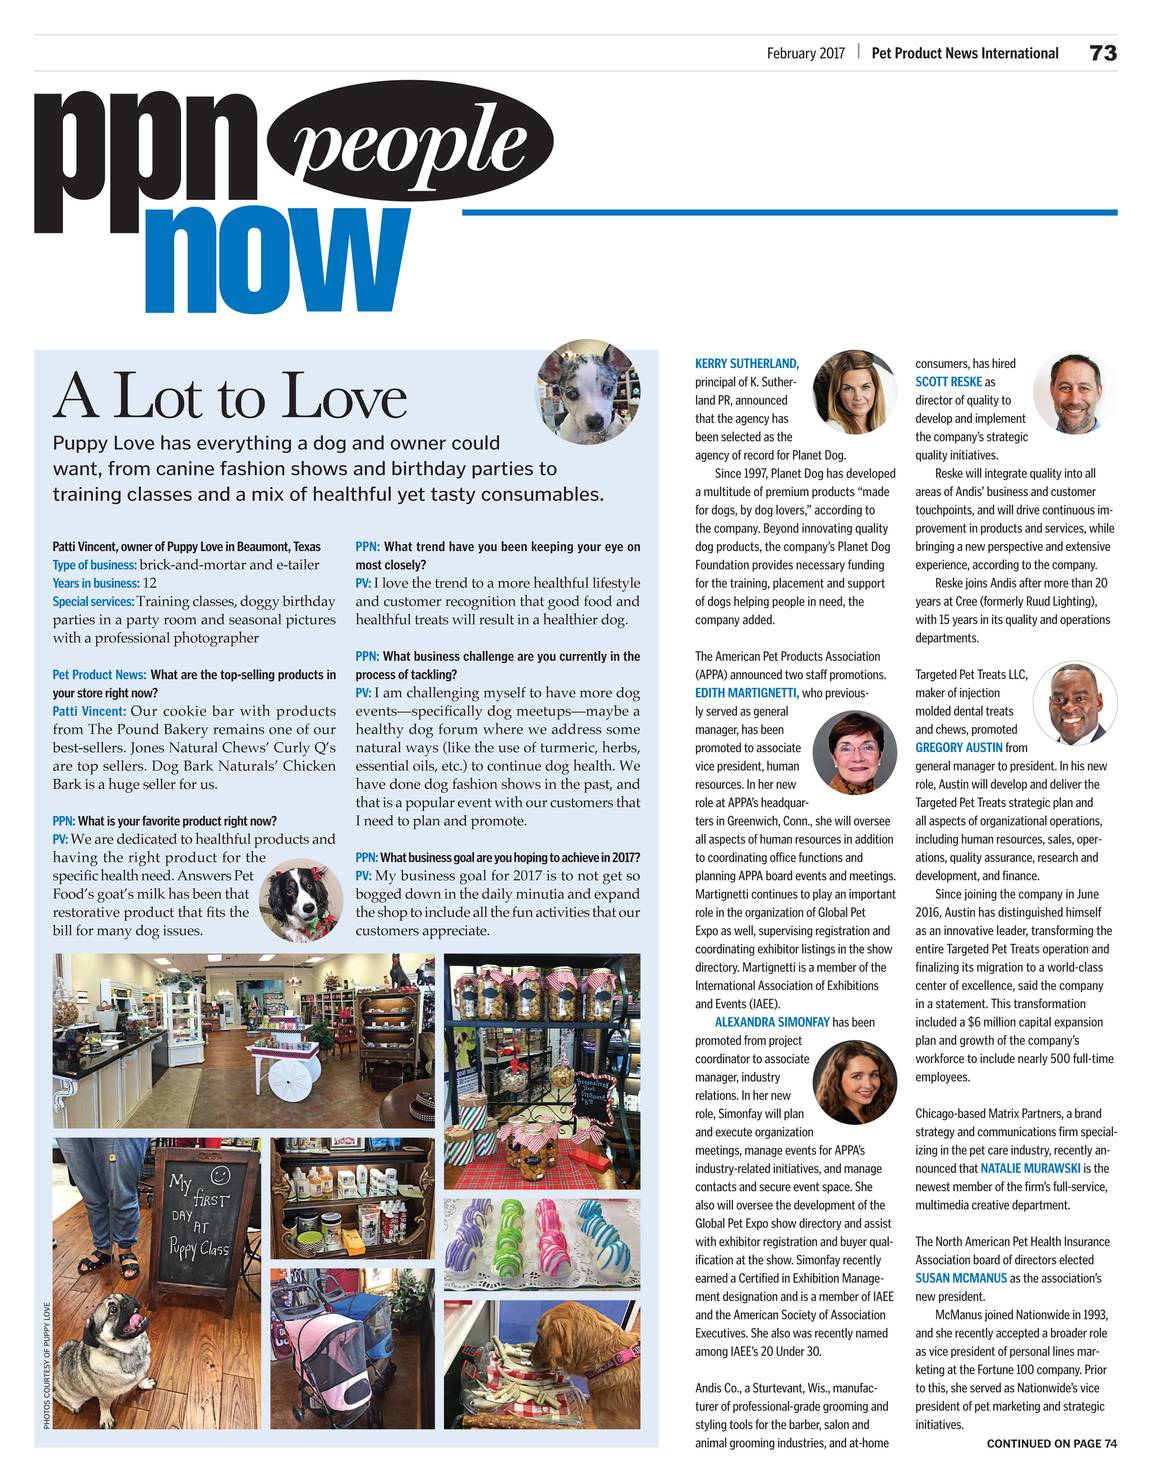 Pet Product News February 2017 Page 72